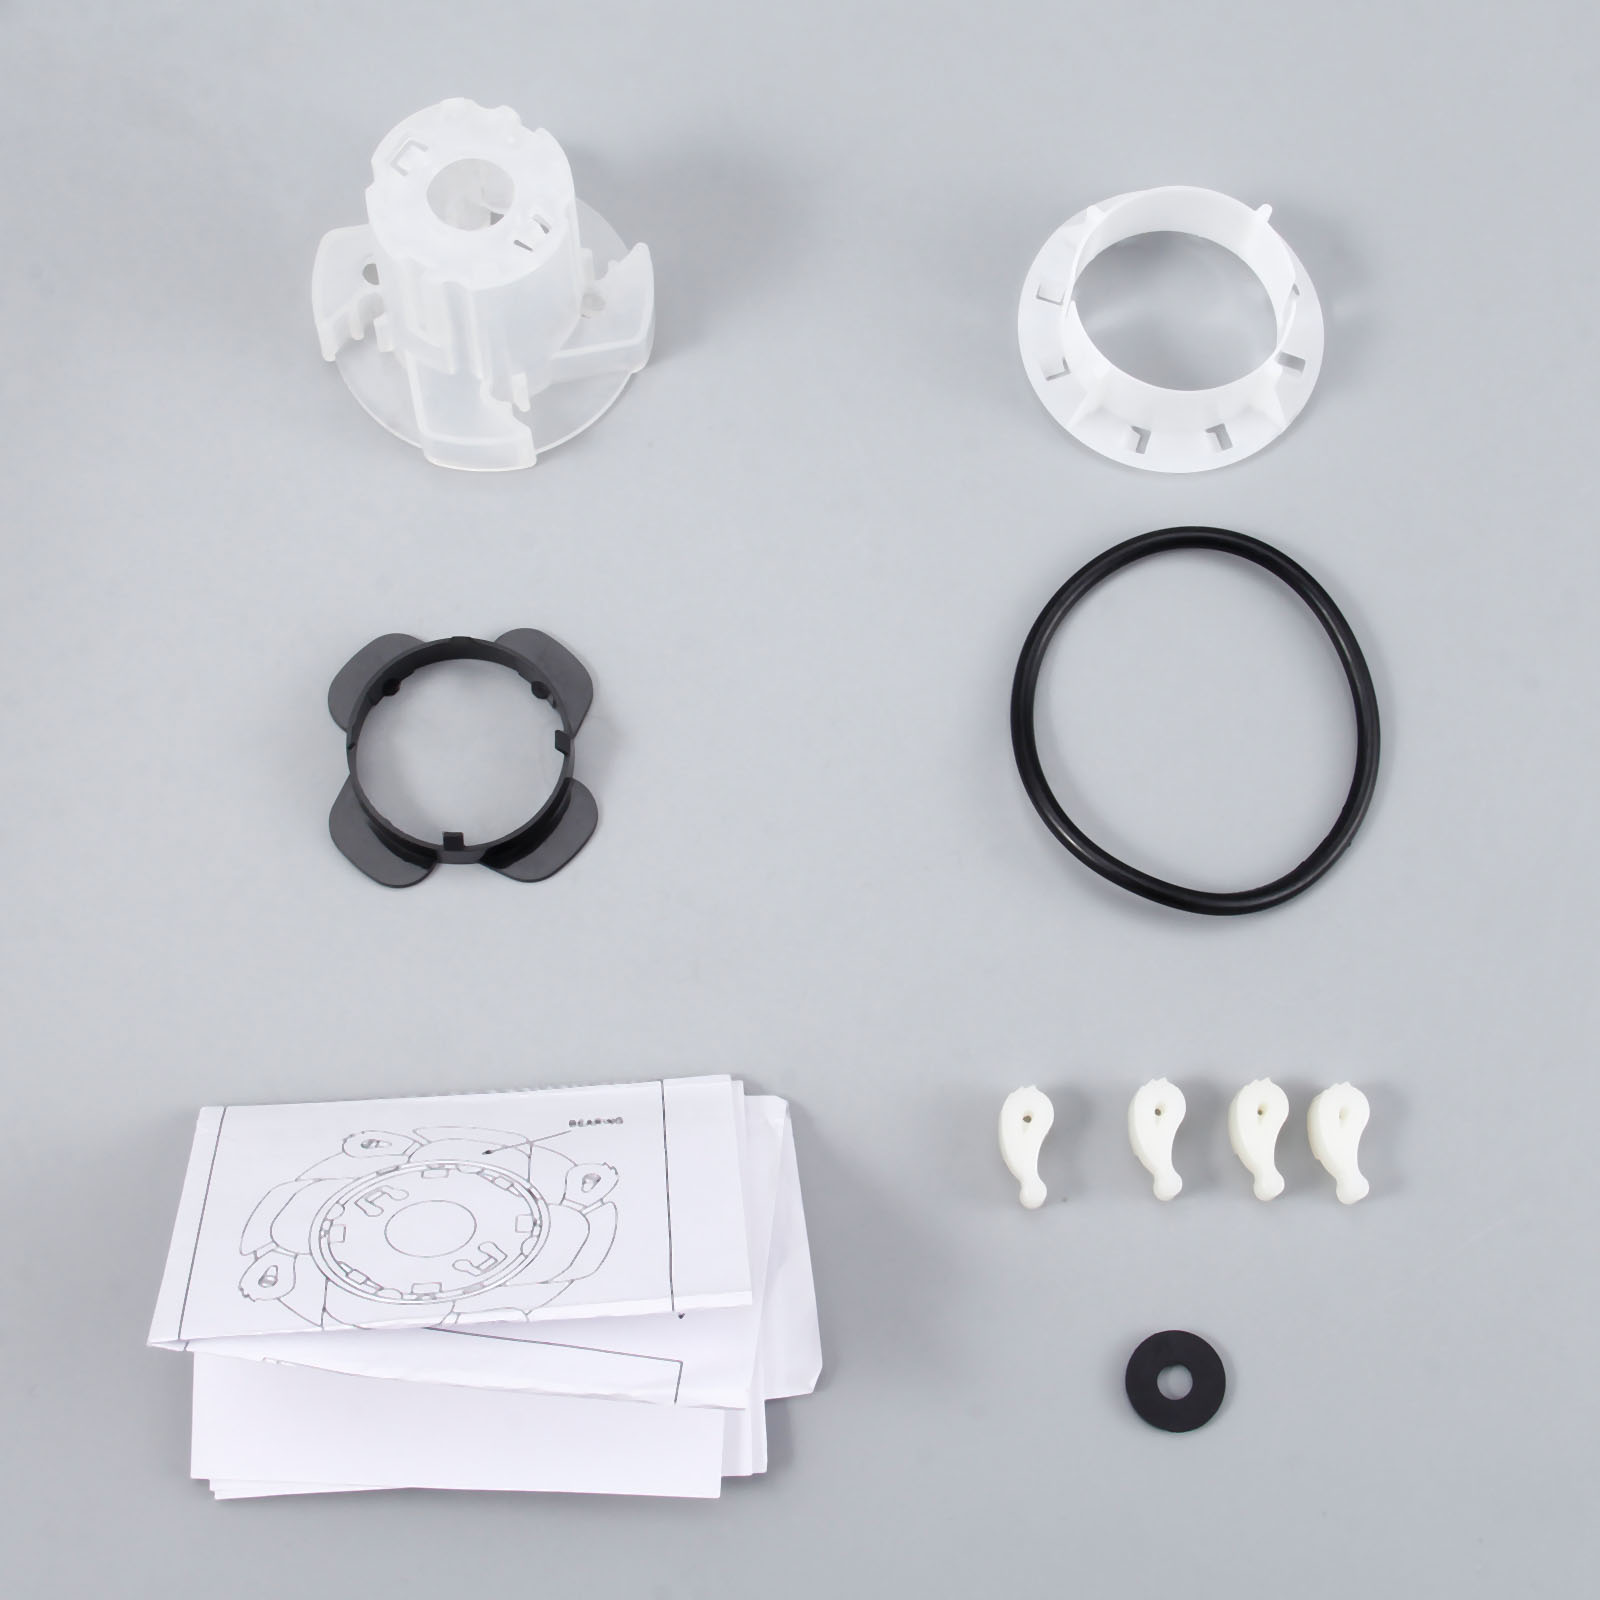 285811 Washer Machine Agitator Cam Kit PS334650 For Kenmore AP3138838 Whirlpool 285746